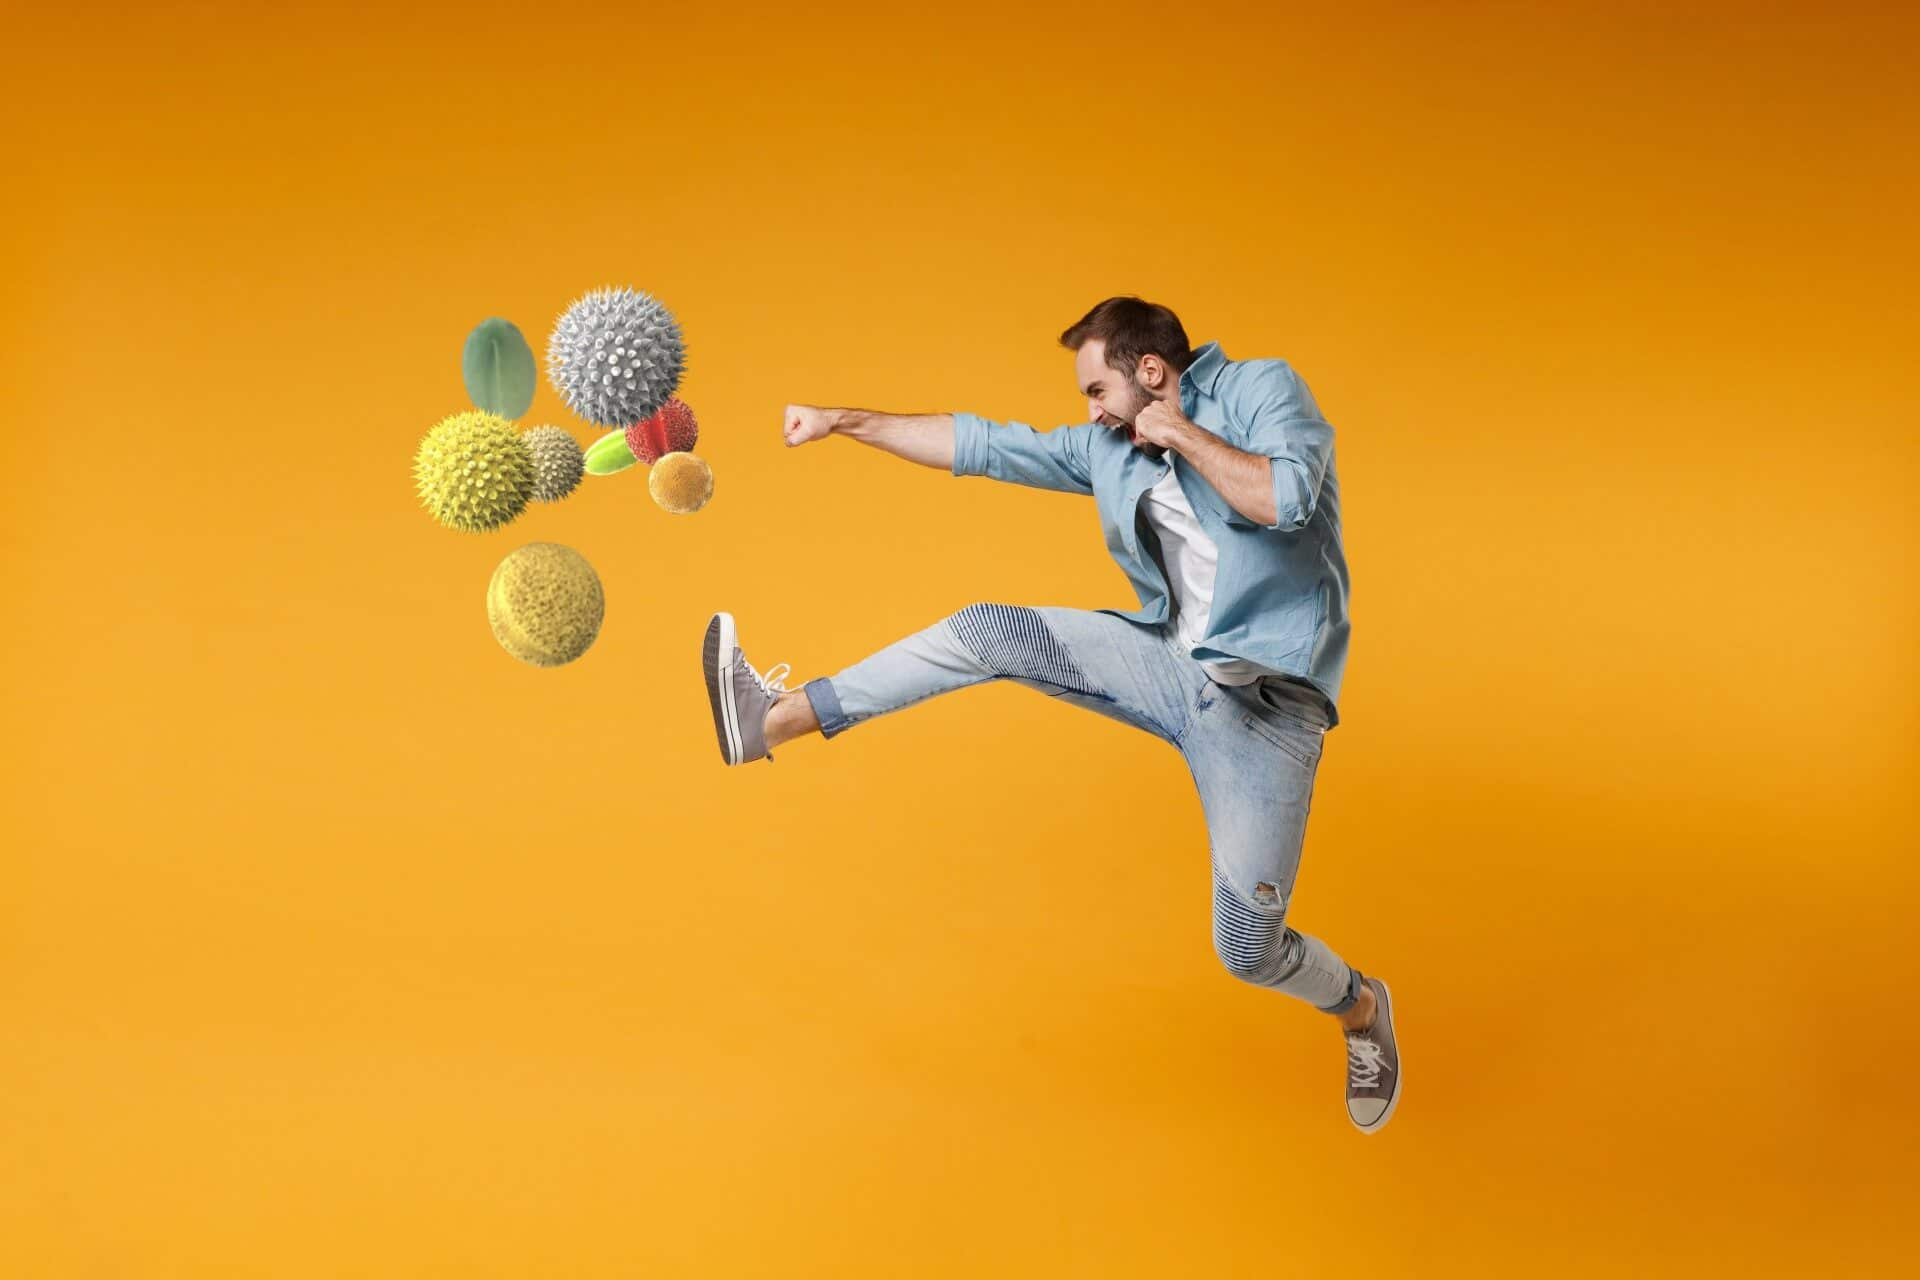 A white man jump kicks common allergens against a bright orange background. Hay fever treatment and allergic rhinitis management concept